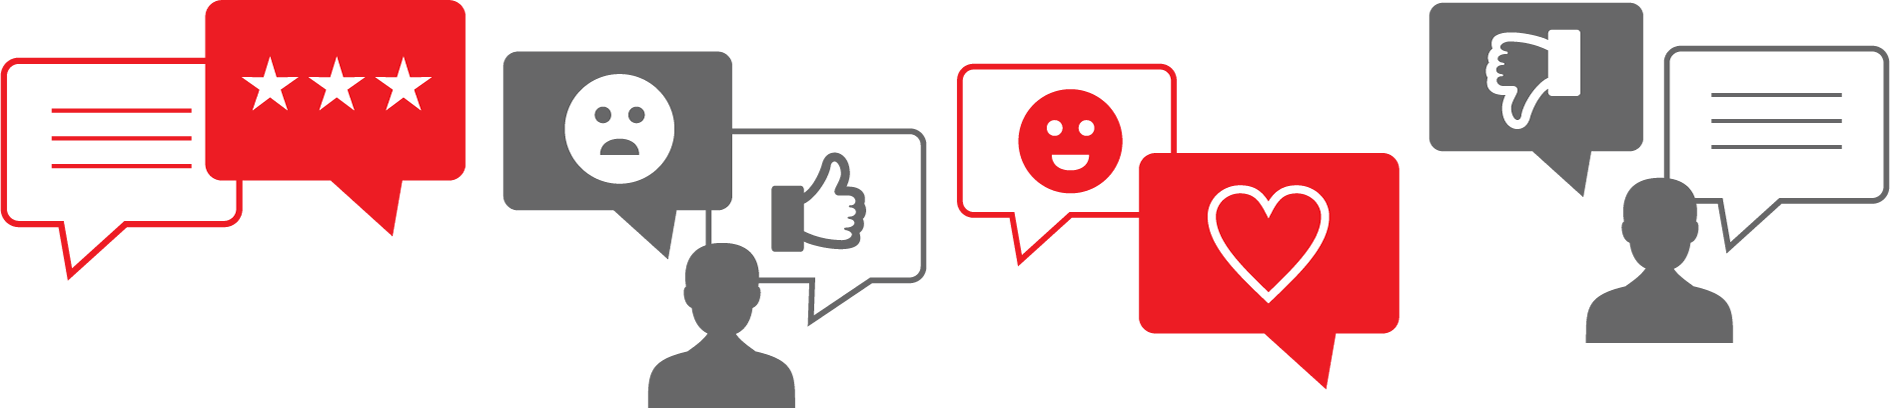 Customer speech bubbles with positive and negative reviews